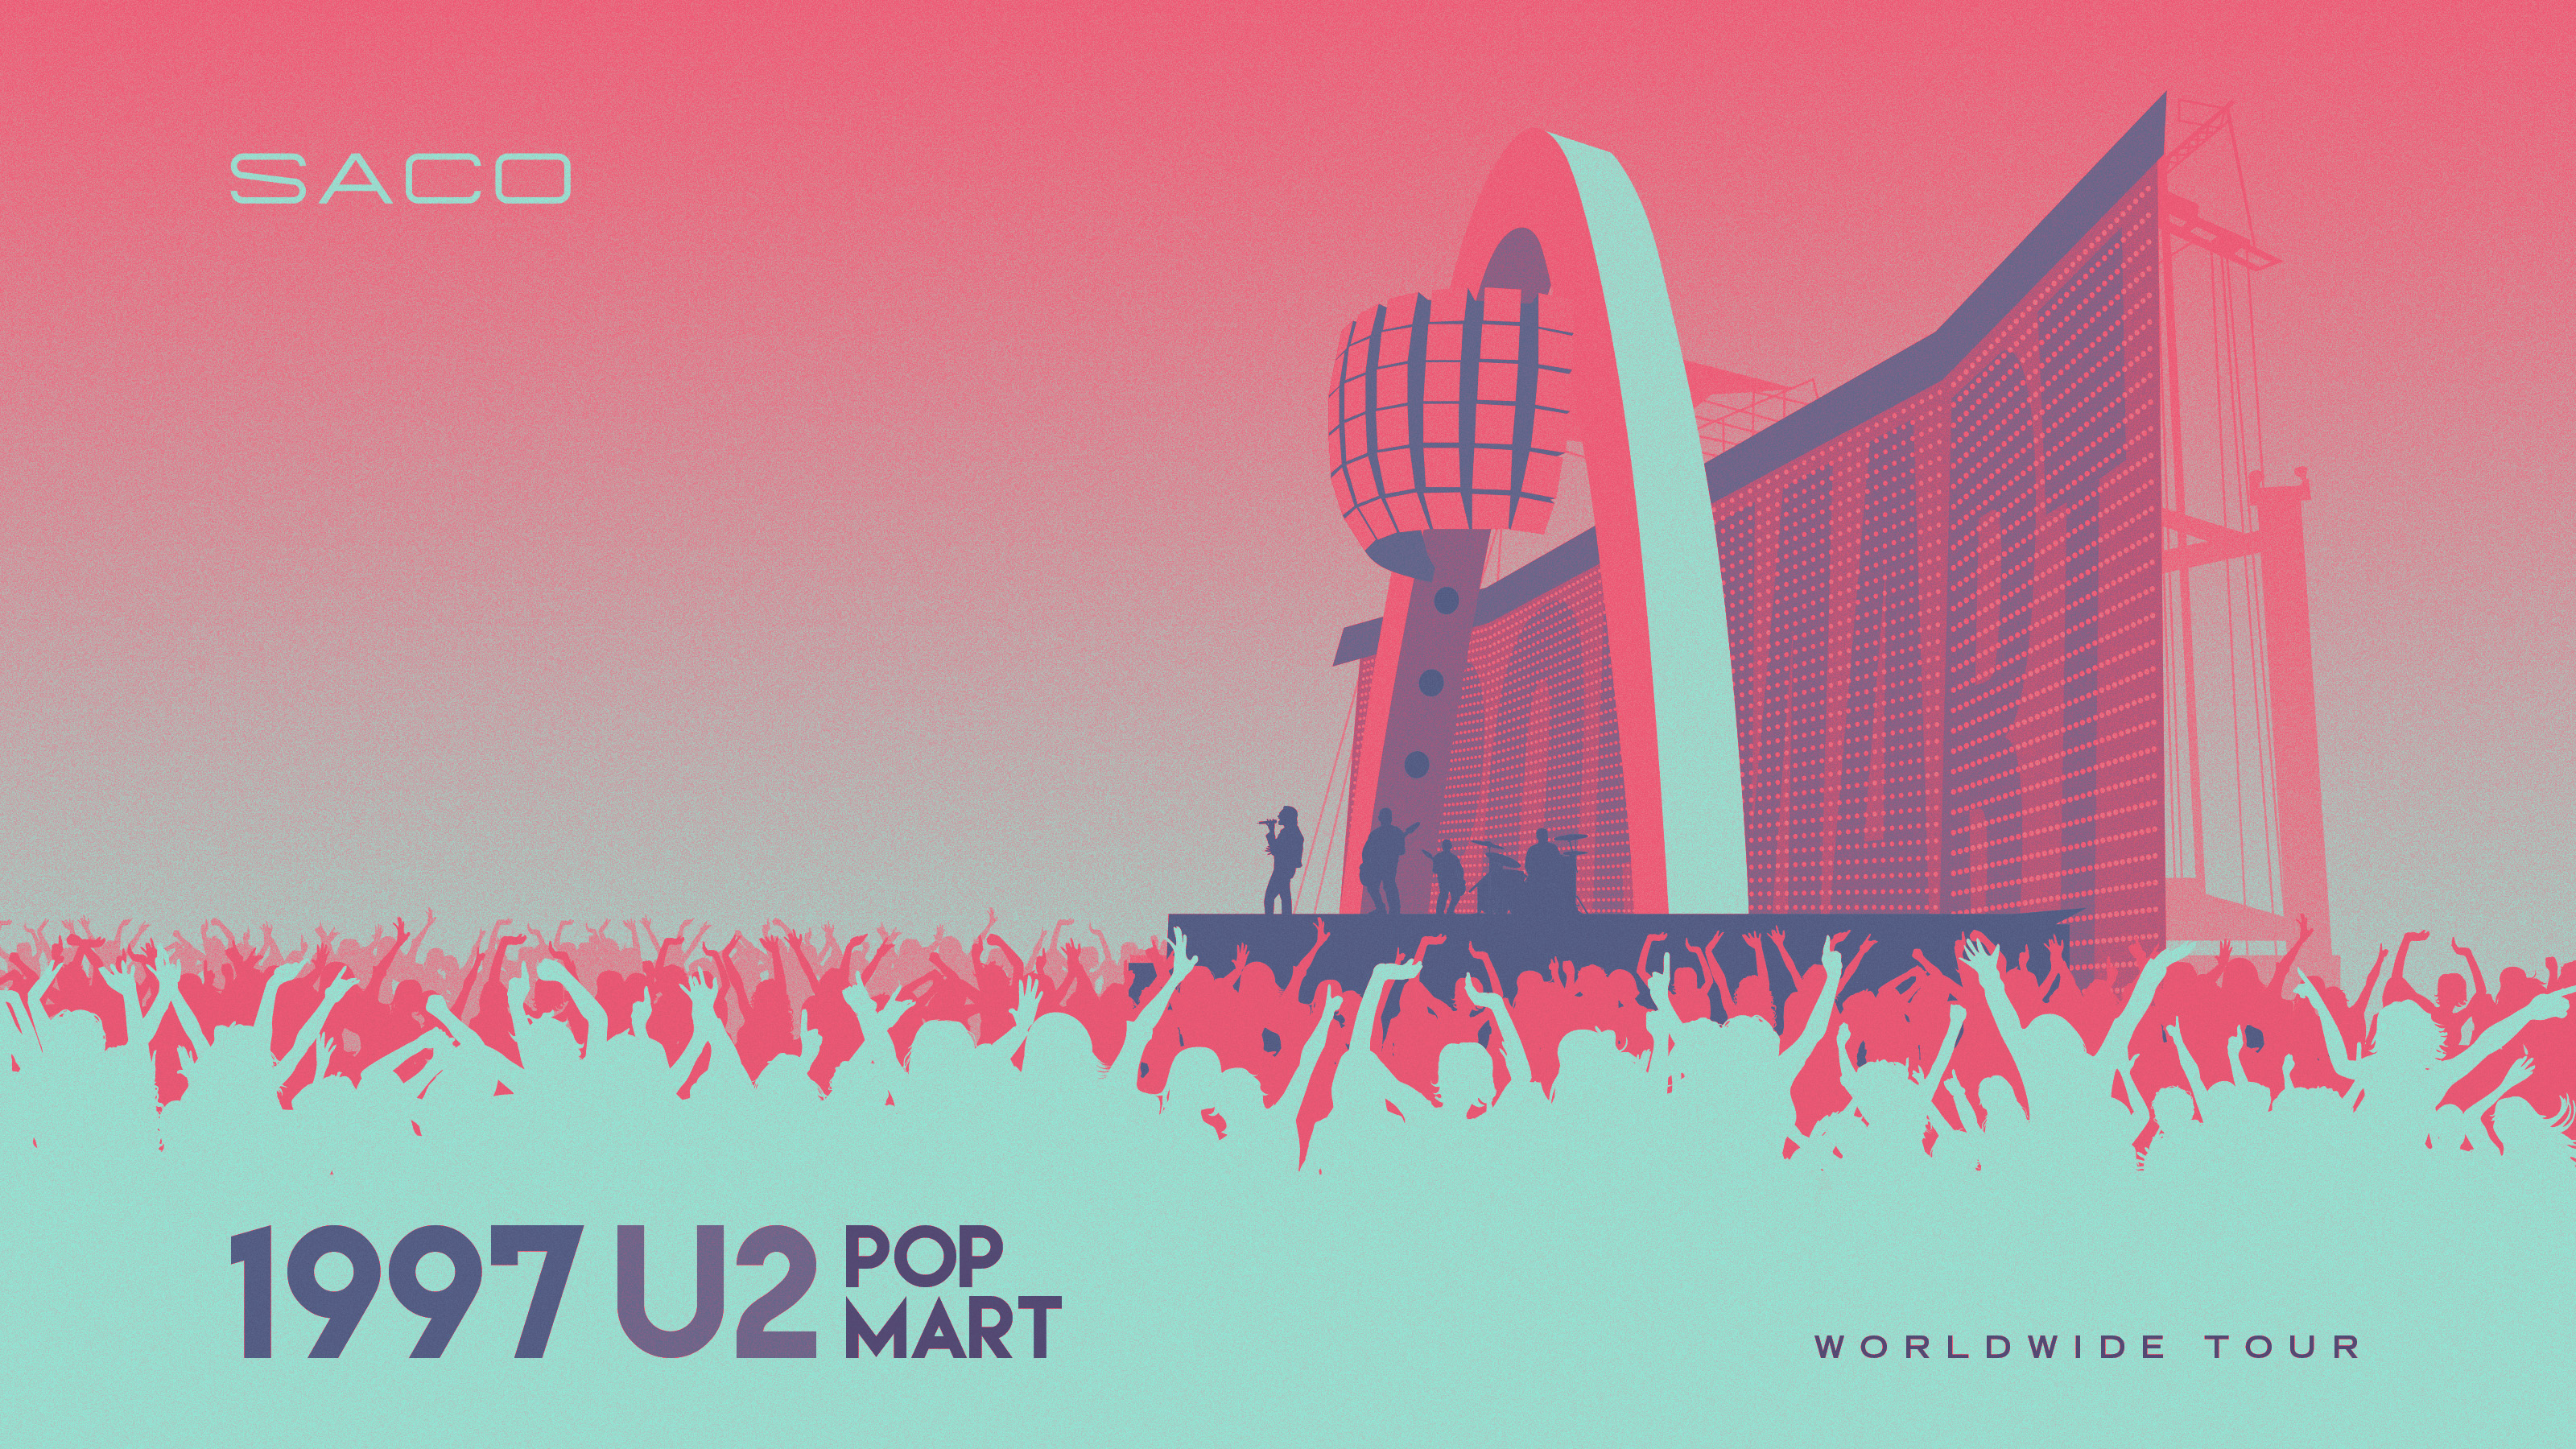 SACO U2 POP MART TOUR WALLPAPER